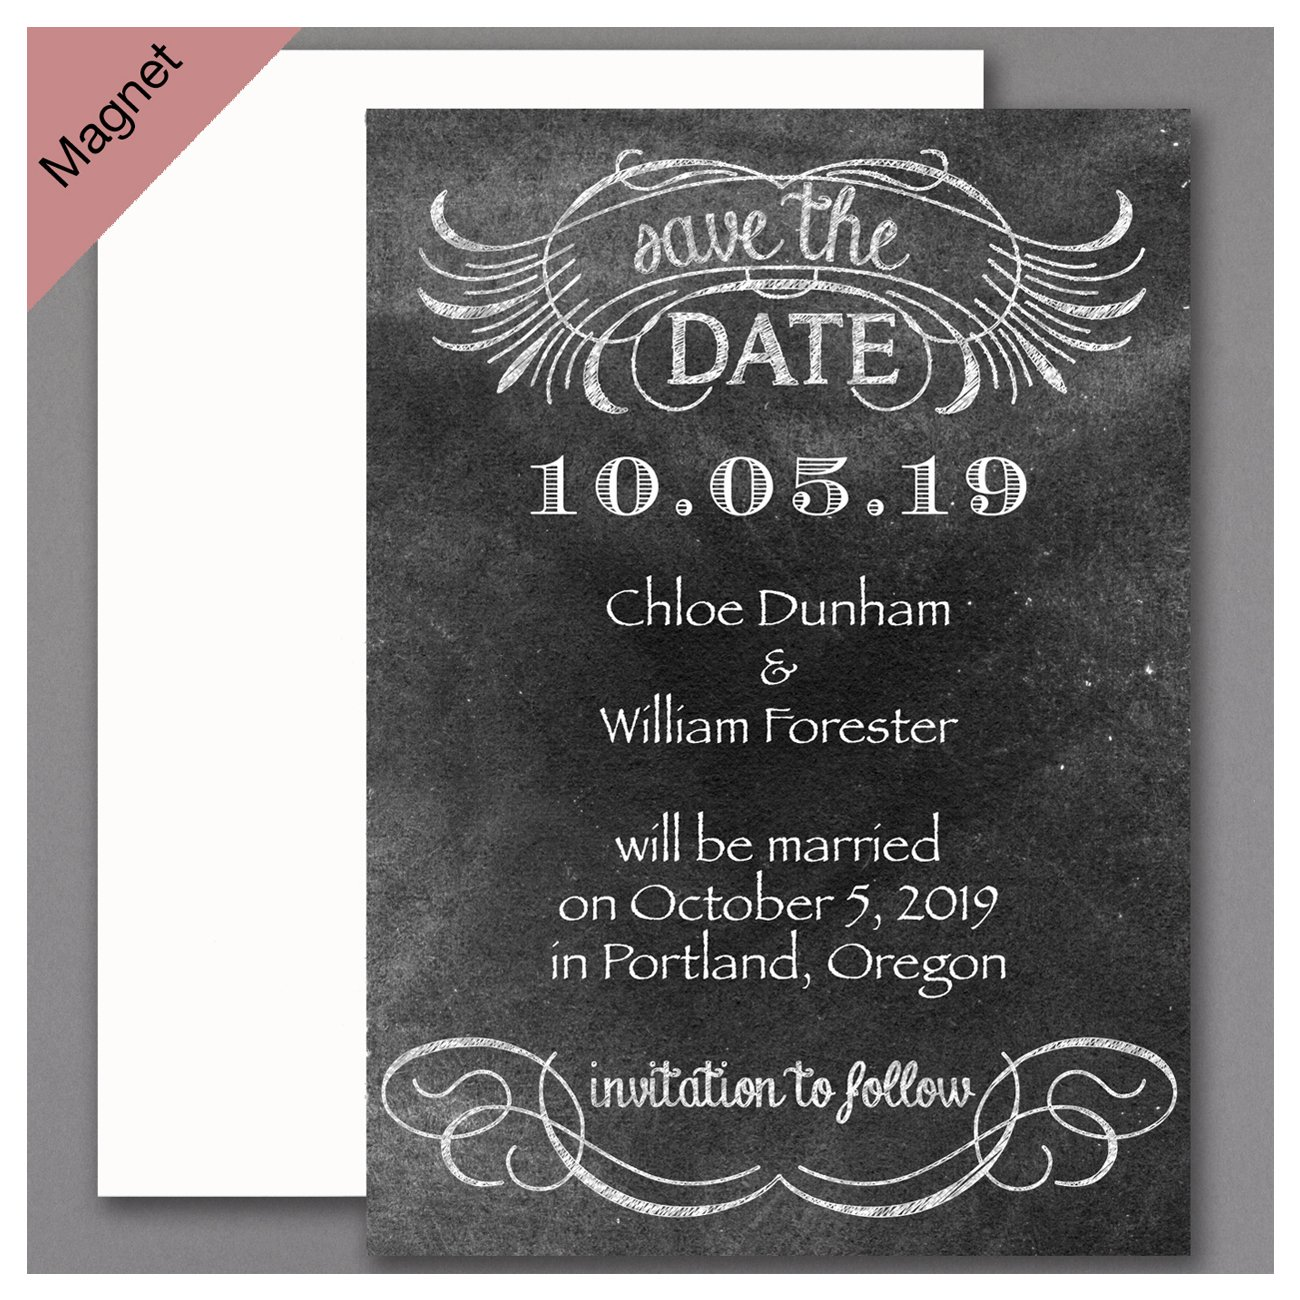 Personalized Carlson Craft Rustic Chalkboard Save the Date Magnet Wedding Quantity 150